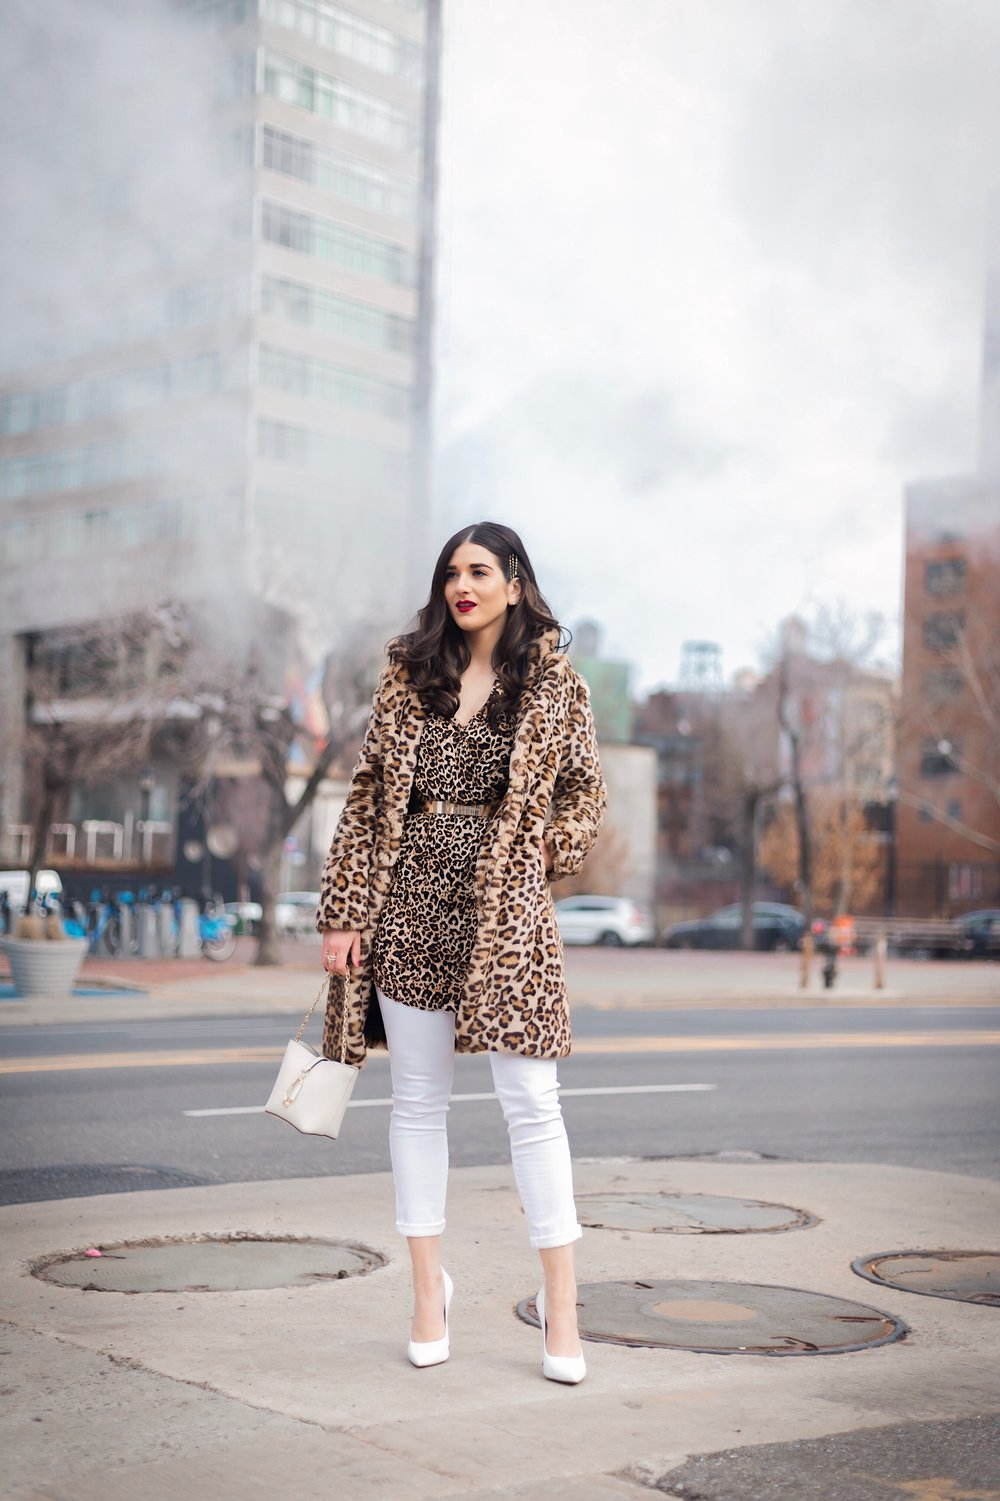 Dressing Up My Democracy Denim Esther Santer Fashion Blog NYC Street Style Blogger Outfit OOTD Trendy Shopping White Jeans Leopard Top Coat Inspo Bobby Pins Hair Trend White Heels Wear Chaya Ross Photography Cream Chain Small Bag Gold Belt Inspiration.jpg